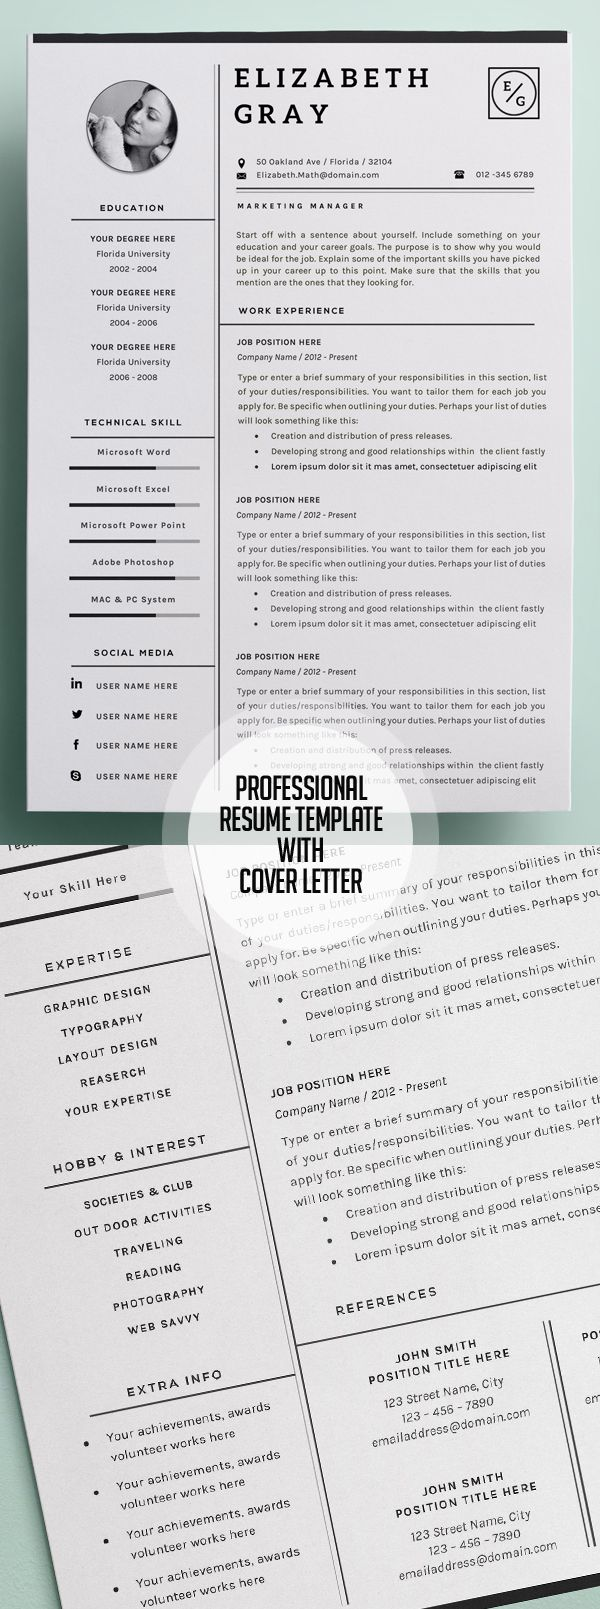 Opposenewapstandardsus  Wonderful  Resume Ideas On Pinterest  Resume Resume Templates And  With Licious Professional And Modern Resume Template With Page Cover Cvtemplate With Astonishing Resume For School Also Quick Resume Builder Free In Addition Resume Examples For Internship And Medical Billing Resume Sample As Well As Test Engineer Resume Additionally Help Creating A Resume From Pinterestcom With Opposenewapstandardsus  Licious  Resume Ideas On Pinterest  Resume Resume Templates And  With Astonishing Professional And Modern Resume Template With Page Cover Cvtemplate And Wonderful Resume For School Also Quick Resume Builder Free In Addition Resume Examples For Internship From Pinterestcom